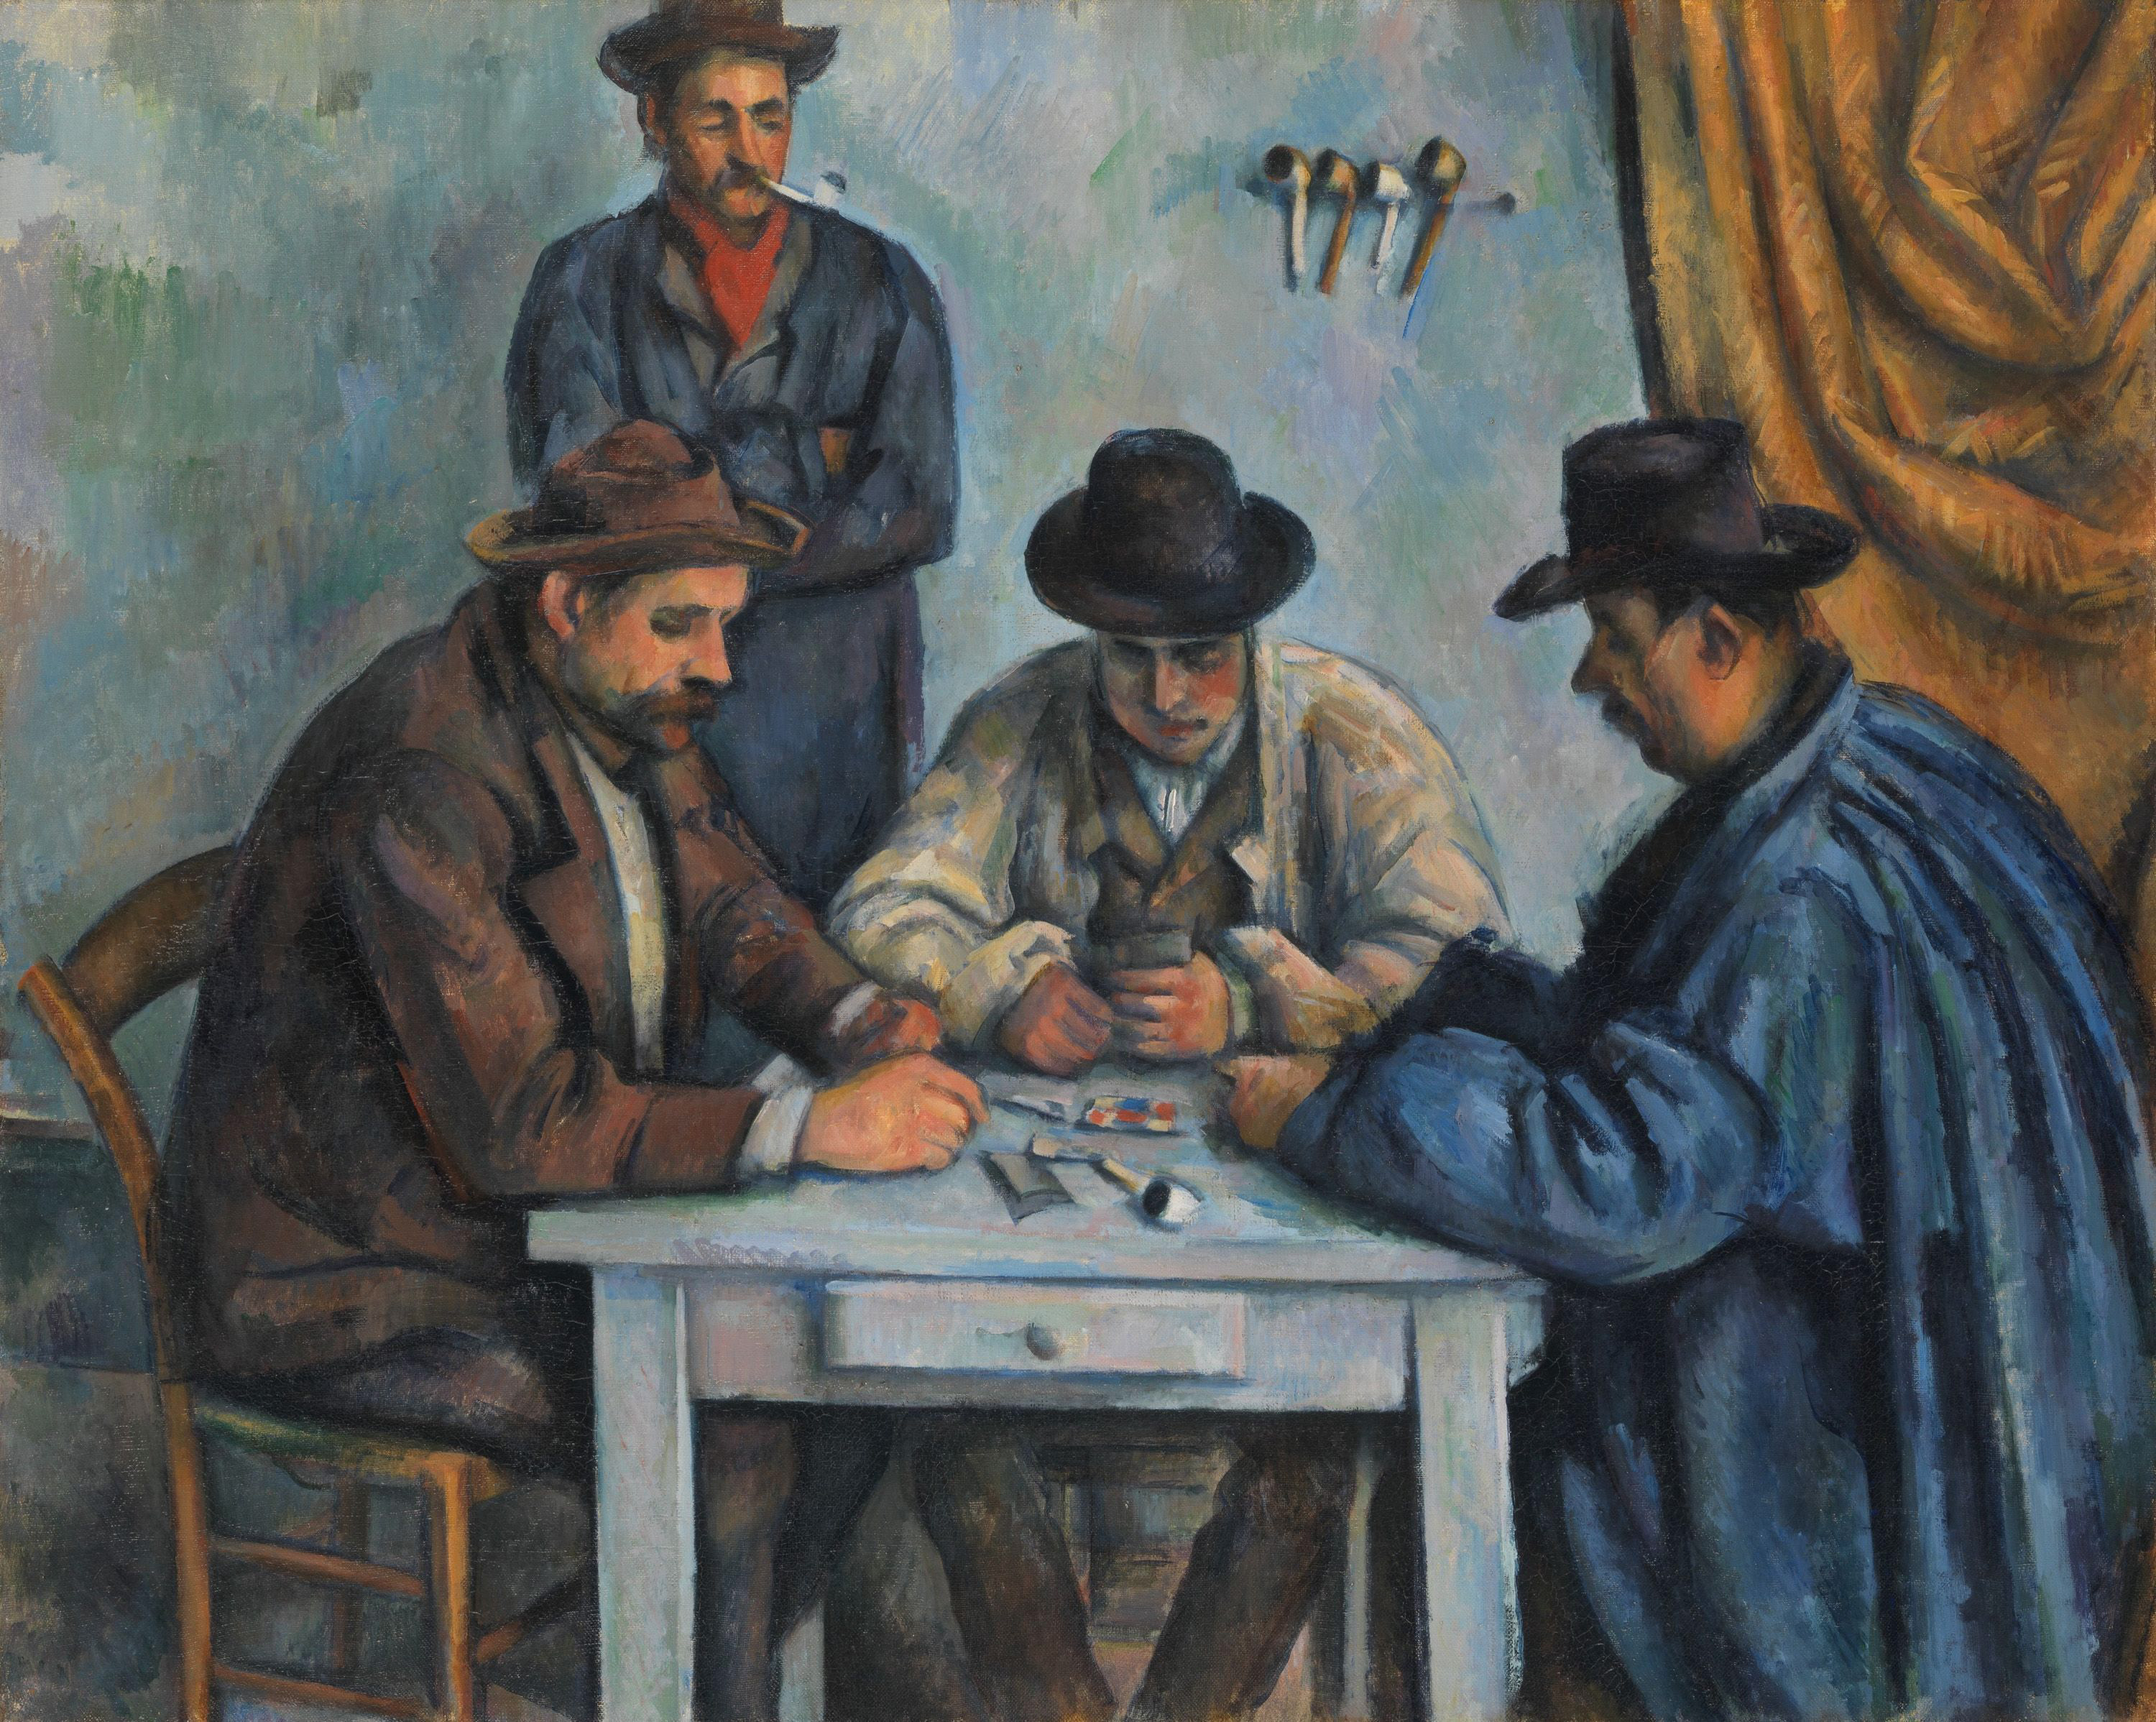 The Card Players, by Paul Cezanne, 1890-92, believed to be the first of five paintings Cezanne made of peasants playing cards.